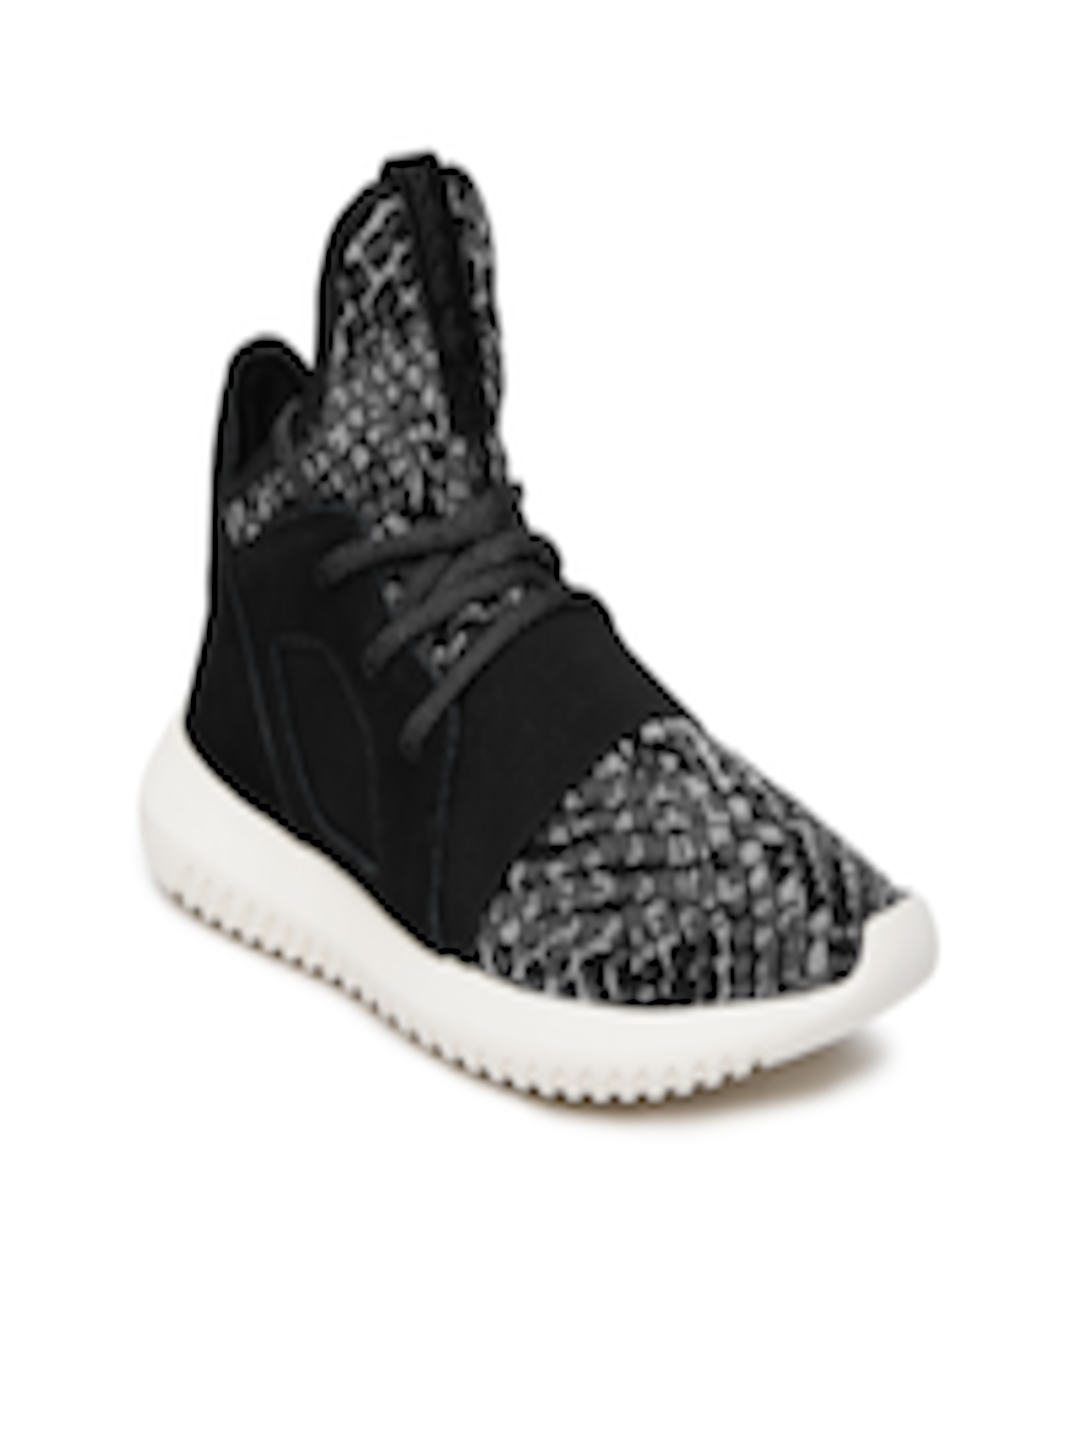 differently 504e2 e6dcb ADIDAS Originals Women Black Tubular Defiant W Woven Mid-Top Sneakers